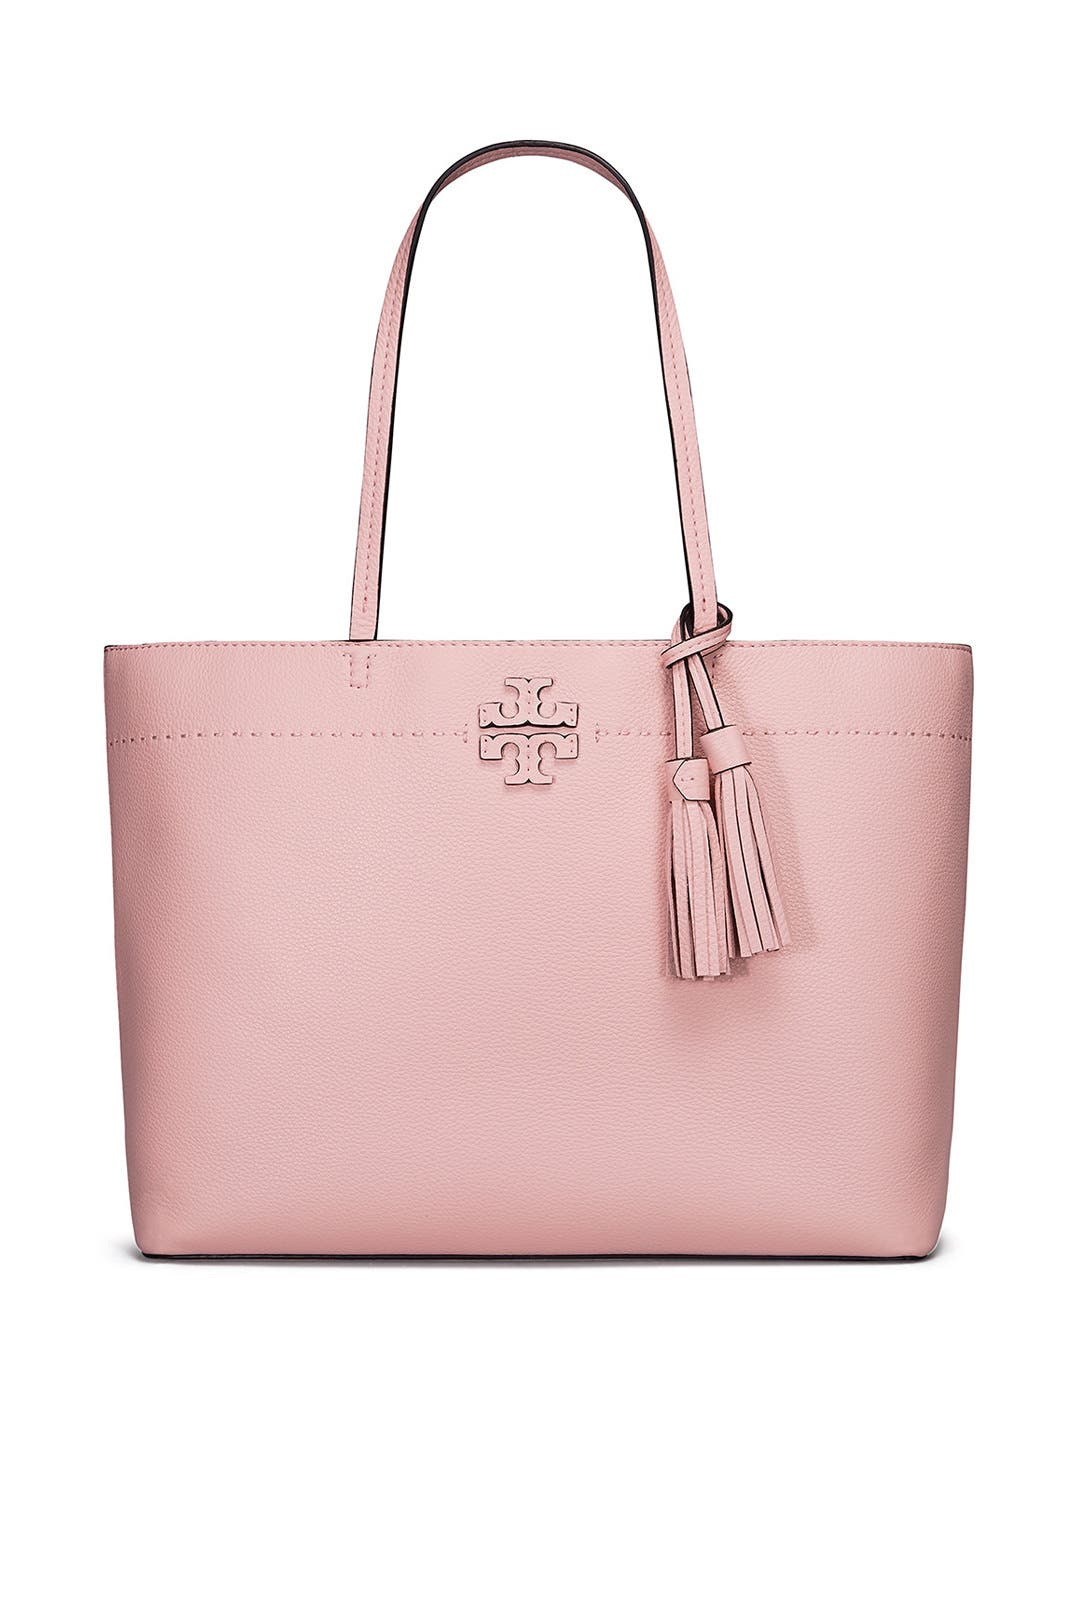 McGraw tote bag - Blue Tory Burch